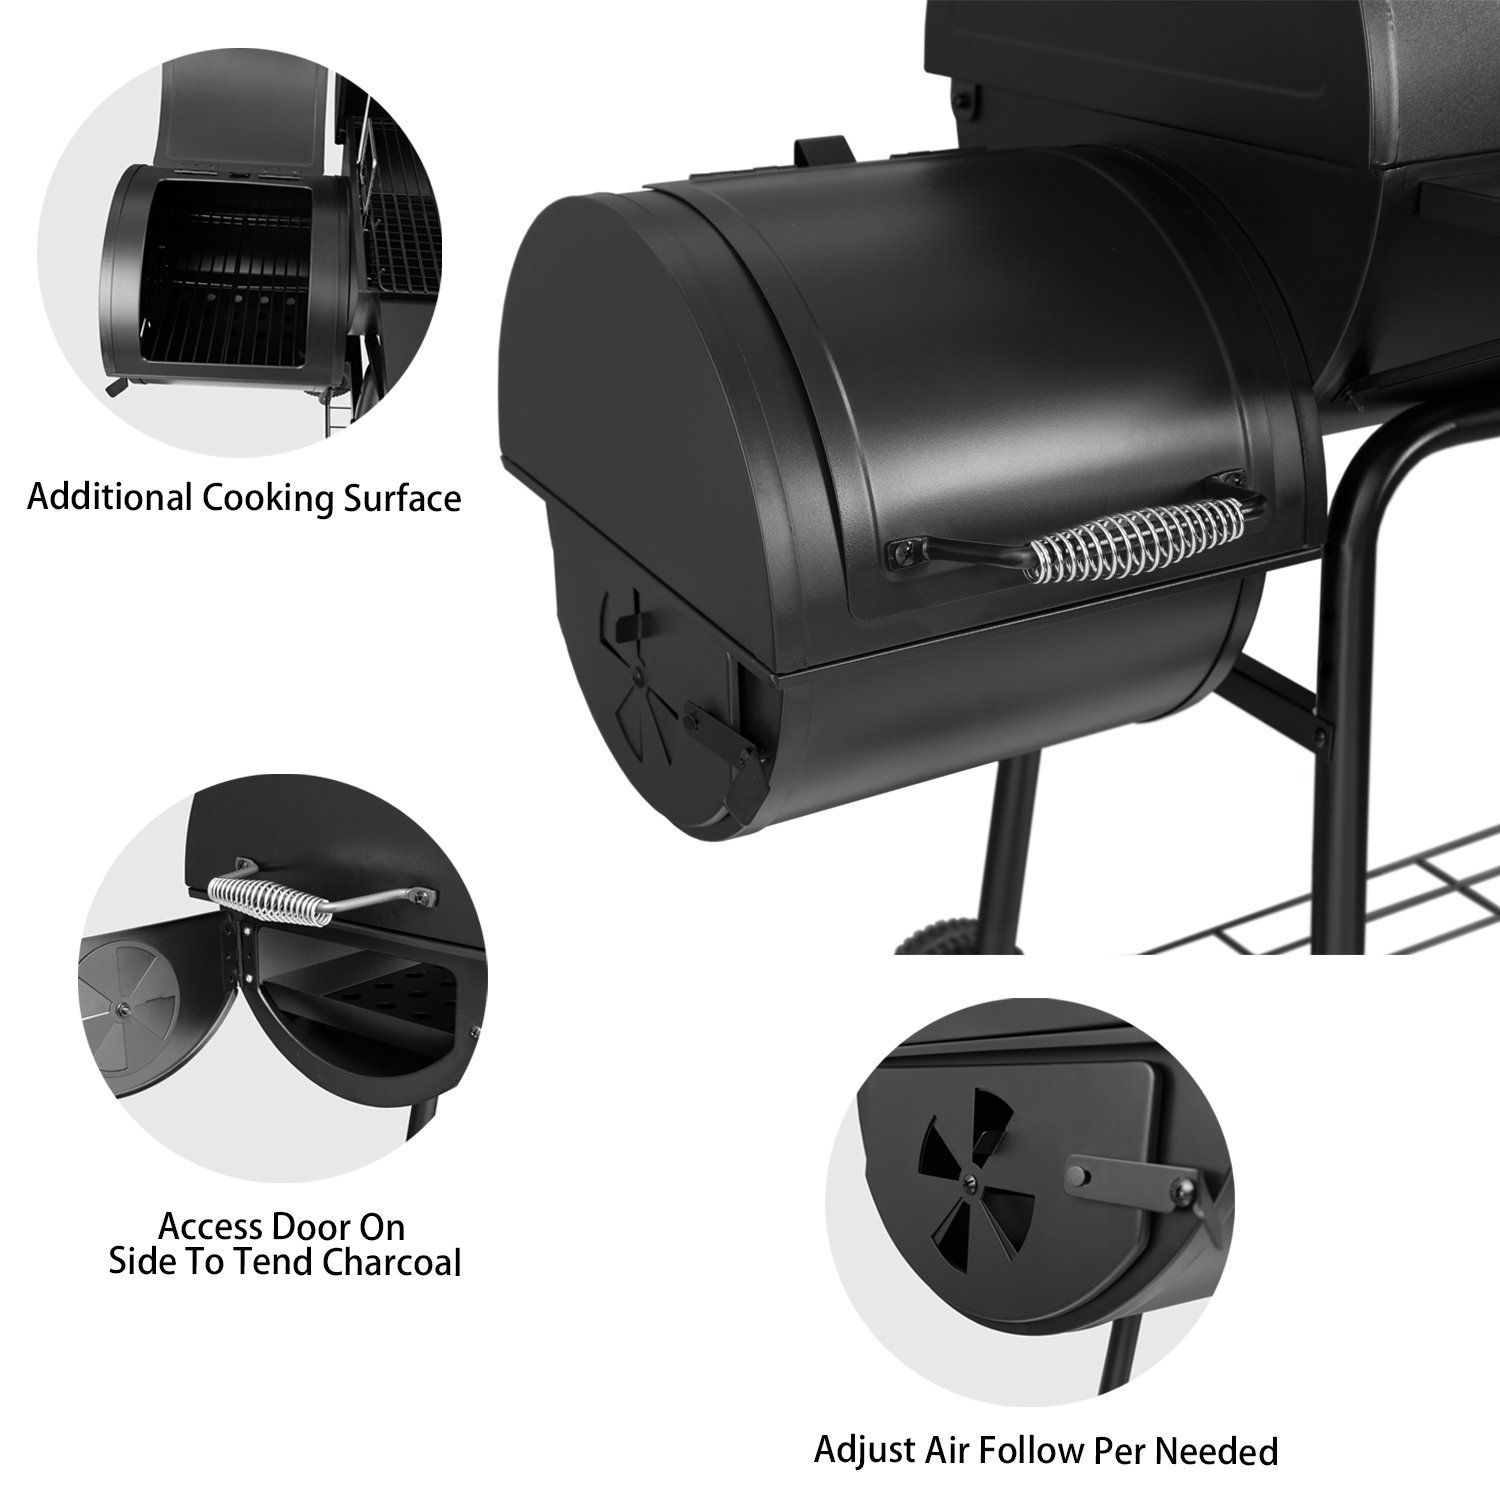 Royal Gourmet BBQ Charcoal Grill and Offset Smoker, 30'' L, 800 Square Inch, Outdoor for Camping, Black by Royal Gourmet (Image #6)